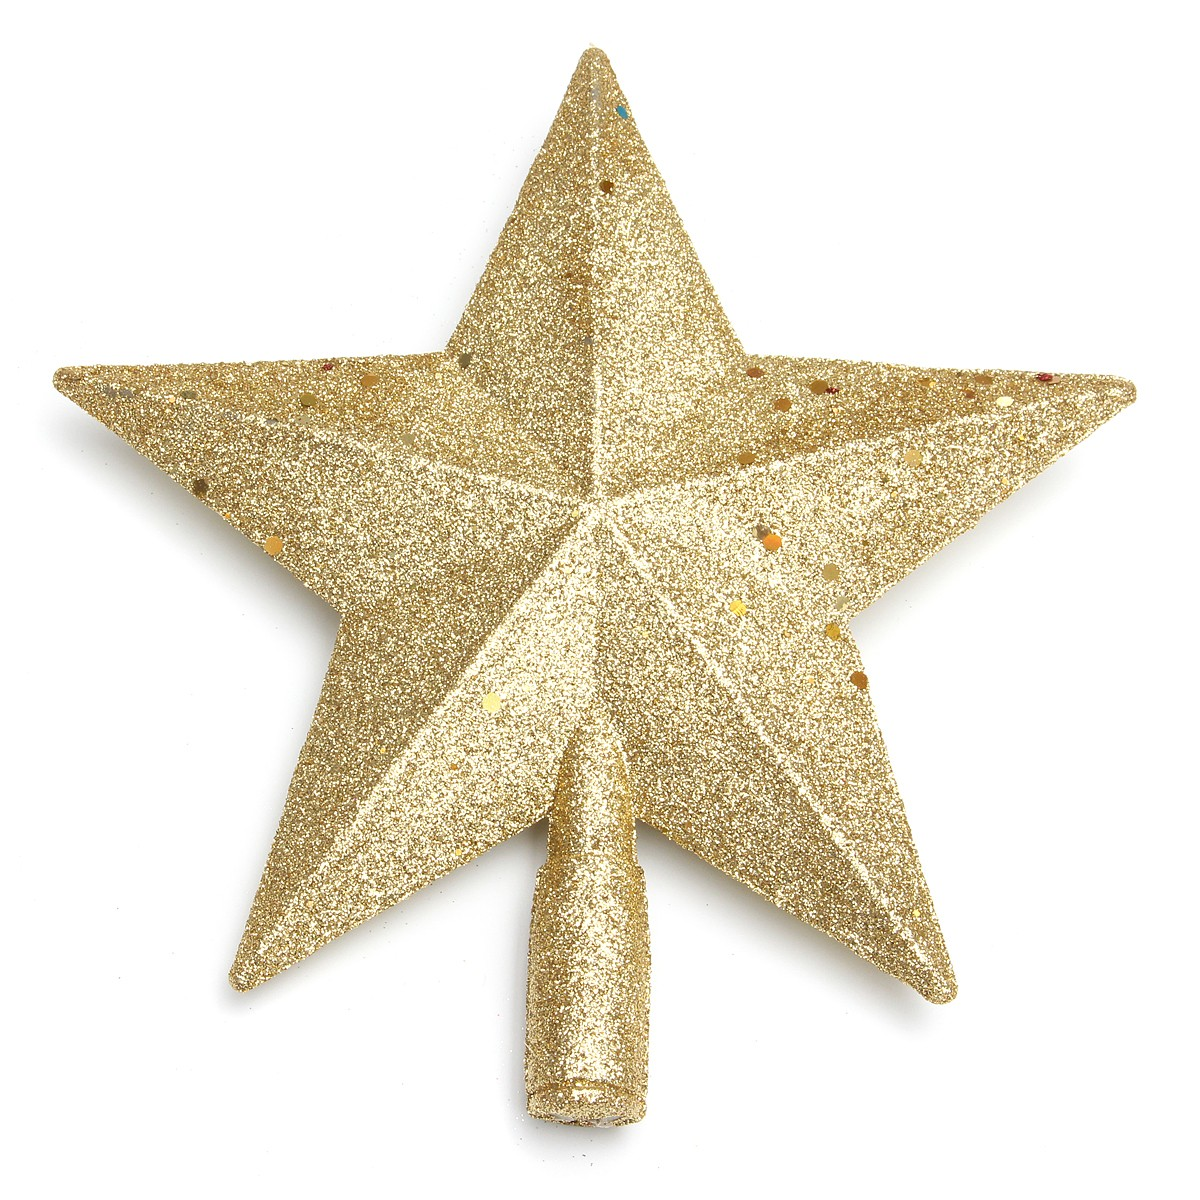 Star For A Christmas Tree: Chic Christmas Tree 3D Decor Shinny Glitter Star Shaped